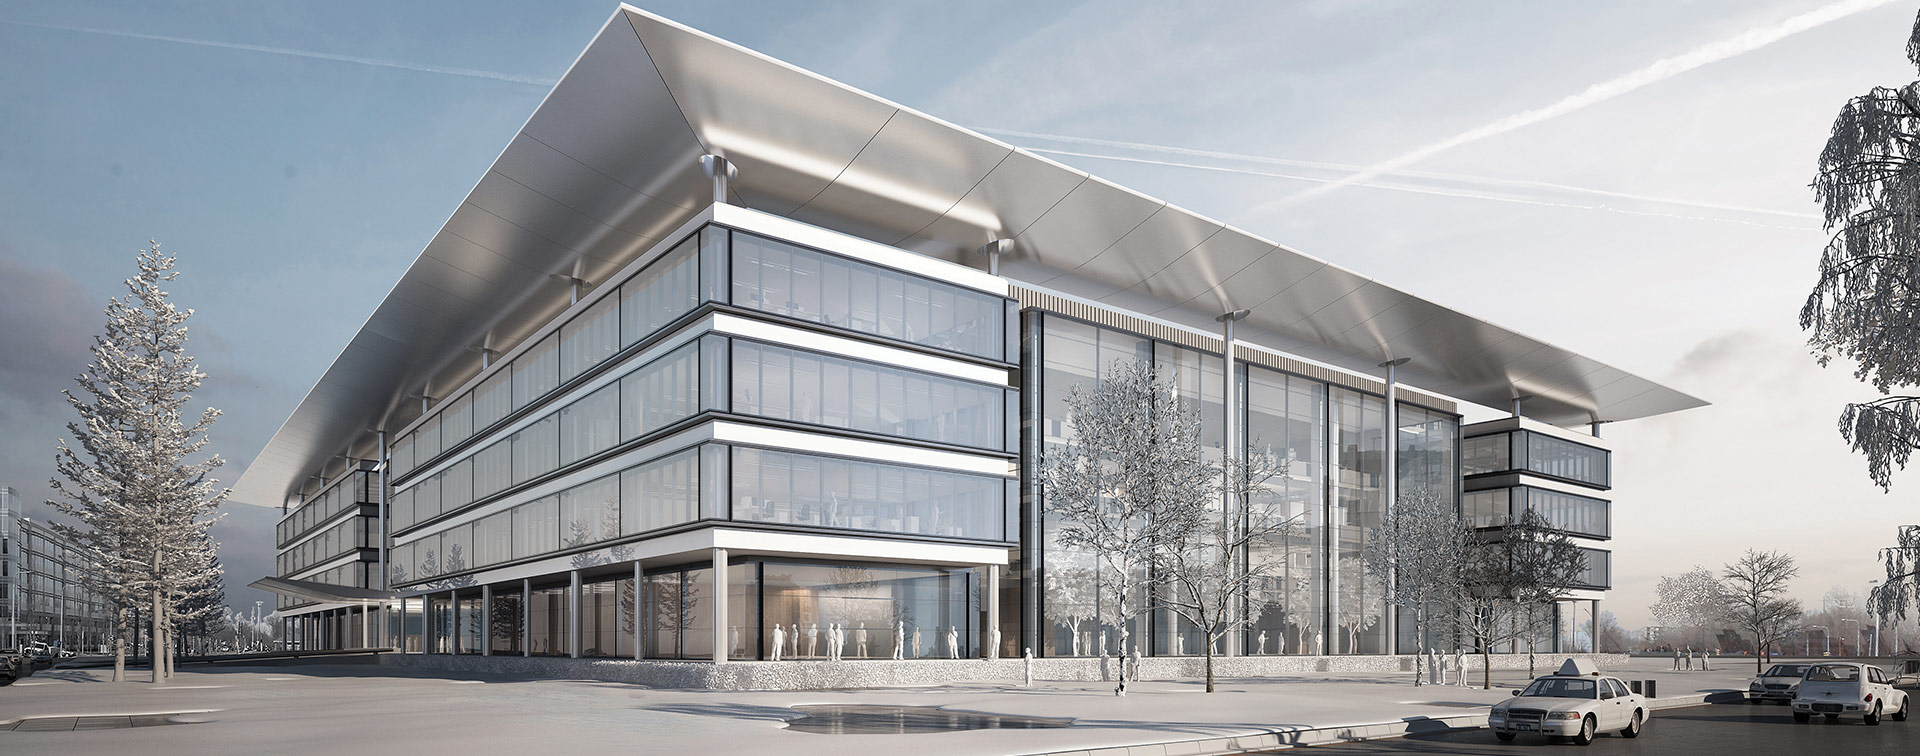 Case western reserve university one of the nations best render of the health education center render of the health education center fandeluxe Choice Image